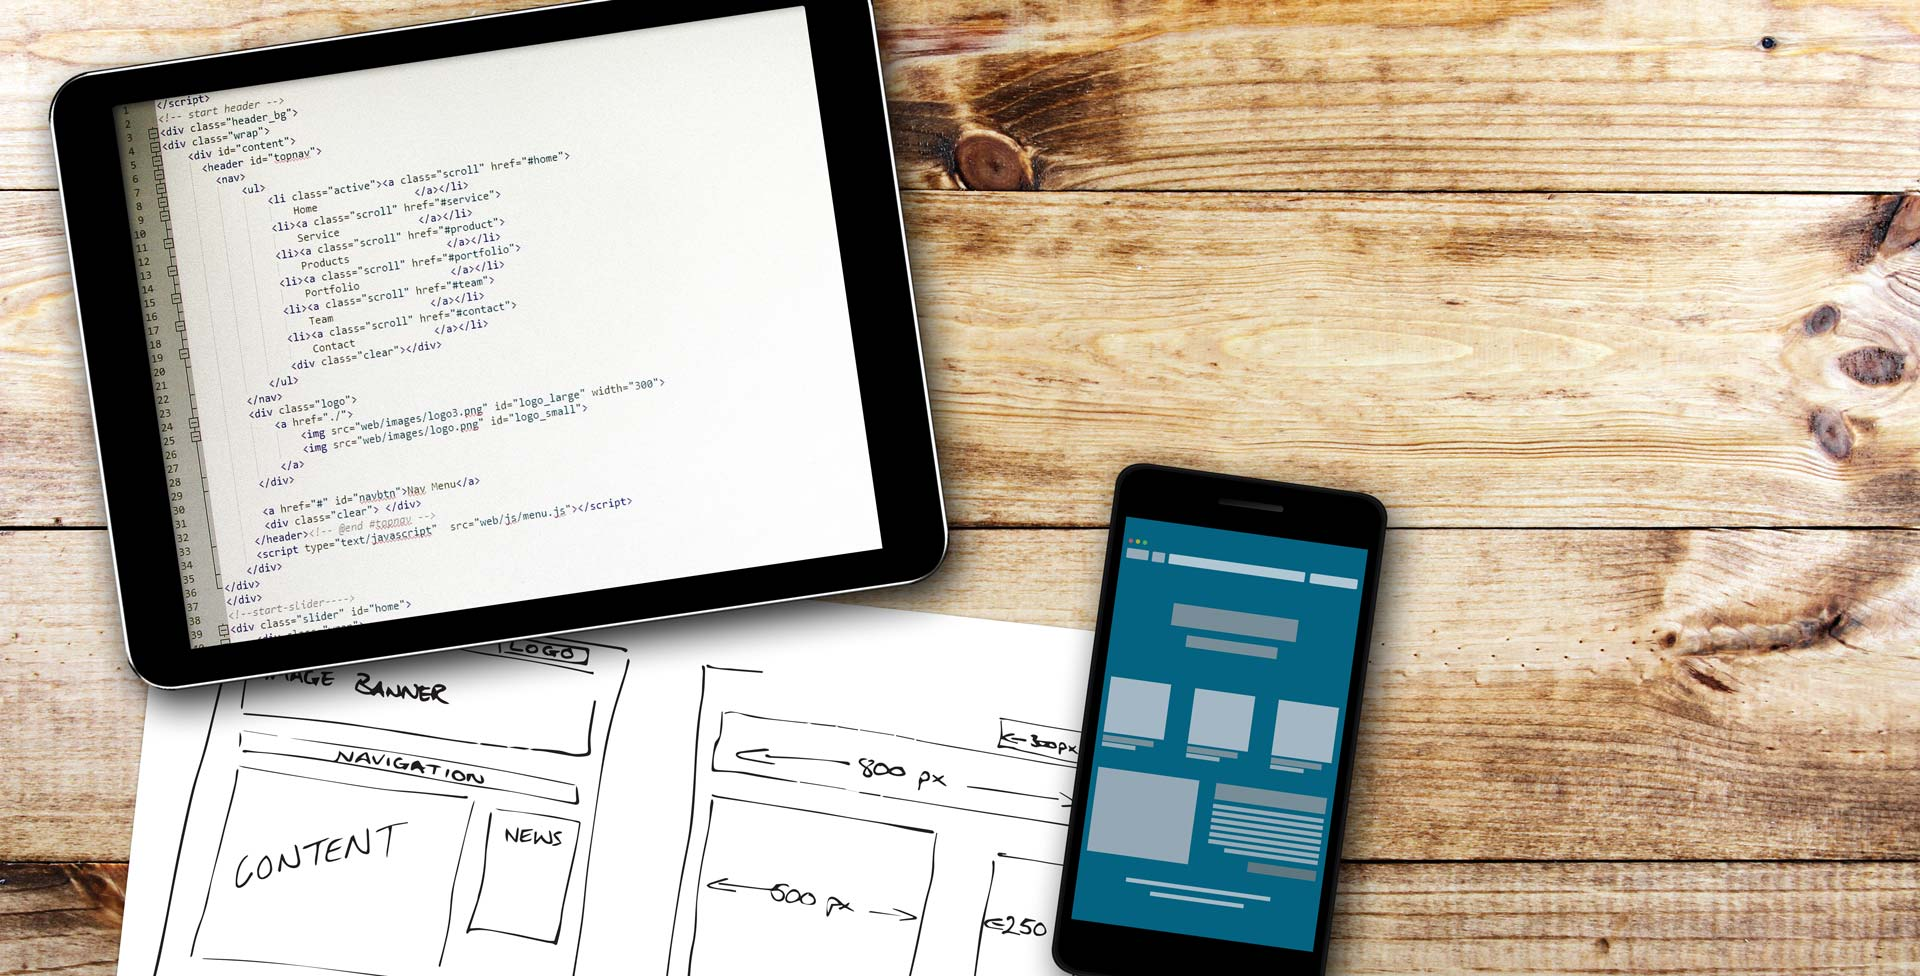 We build quality websites to help your business grow